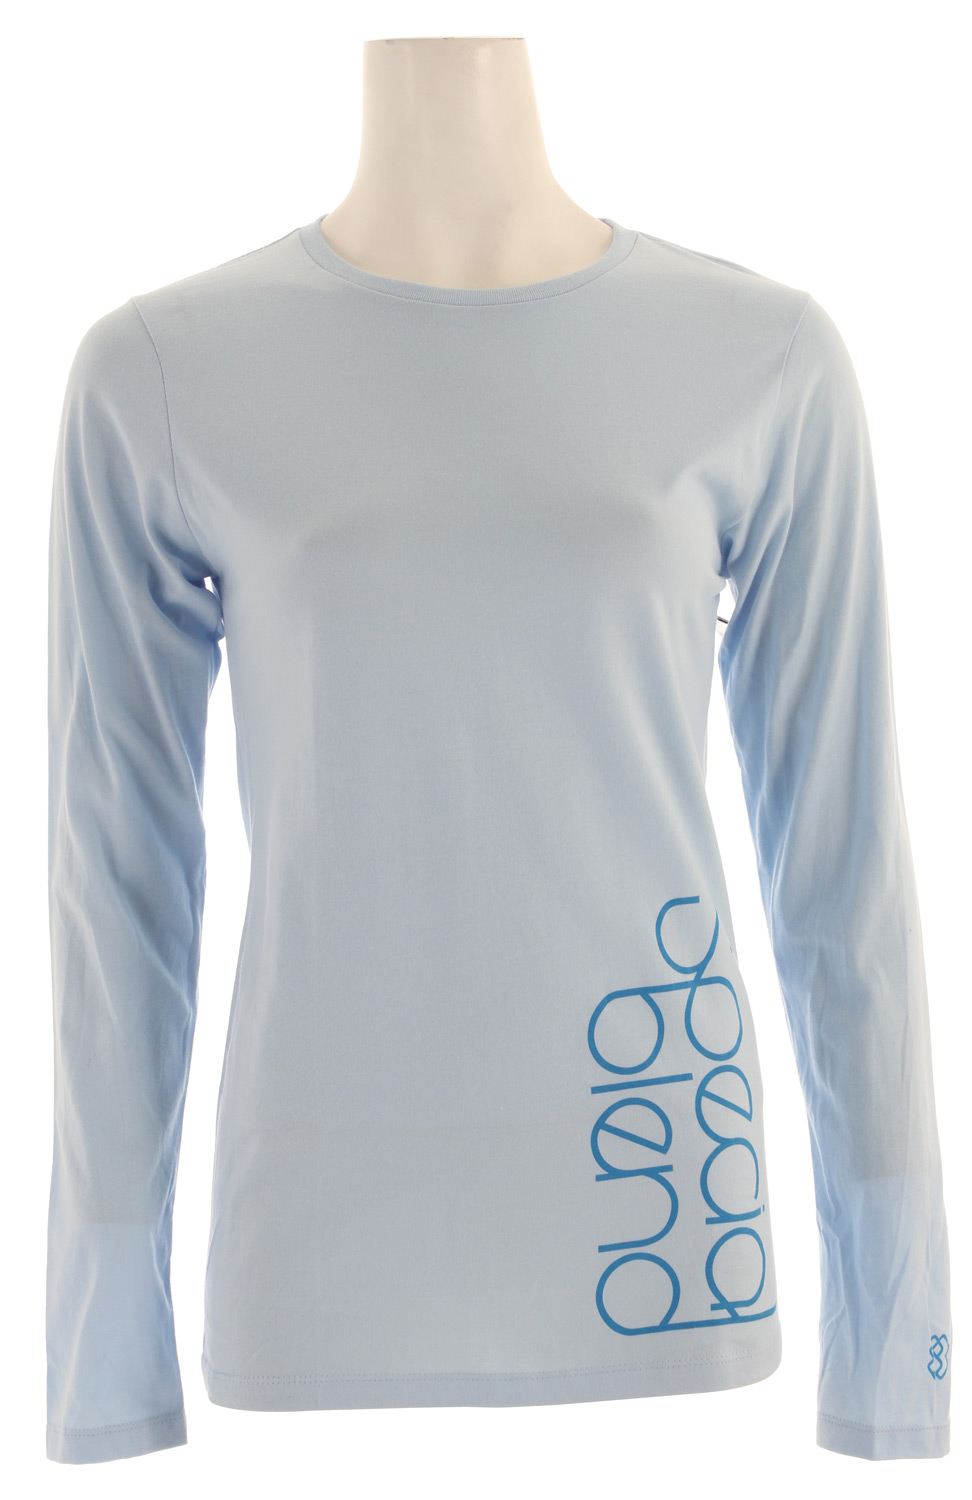 Key Features of The Special Blend Side Ways L/S T-Shirt: Slim Fit Crew Neck Long Sleeve 100% Cotton - $6.96